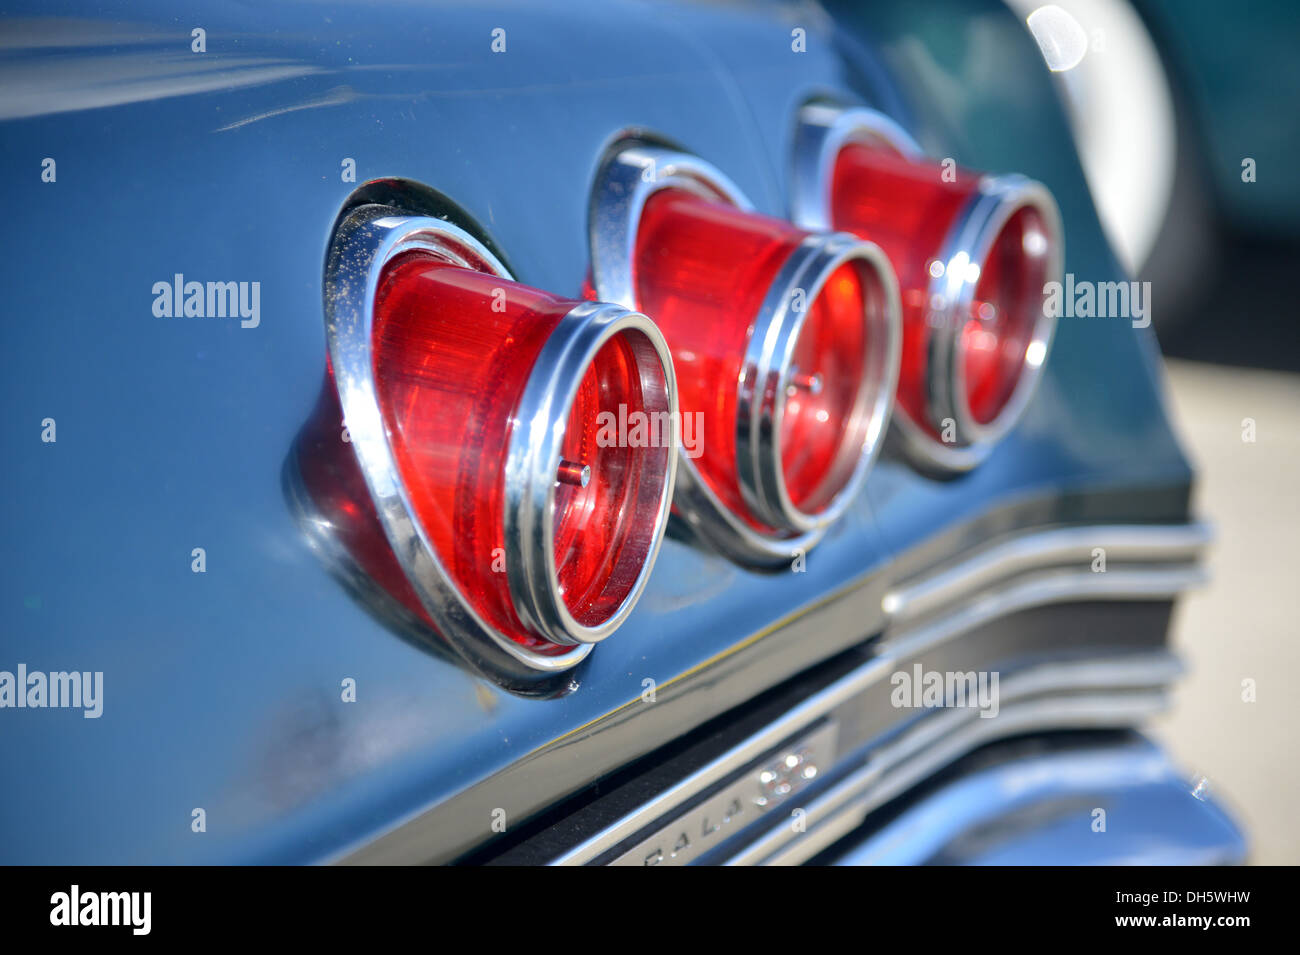 Chevrolet impala tail lights classic american car stock for American classic lighting